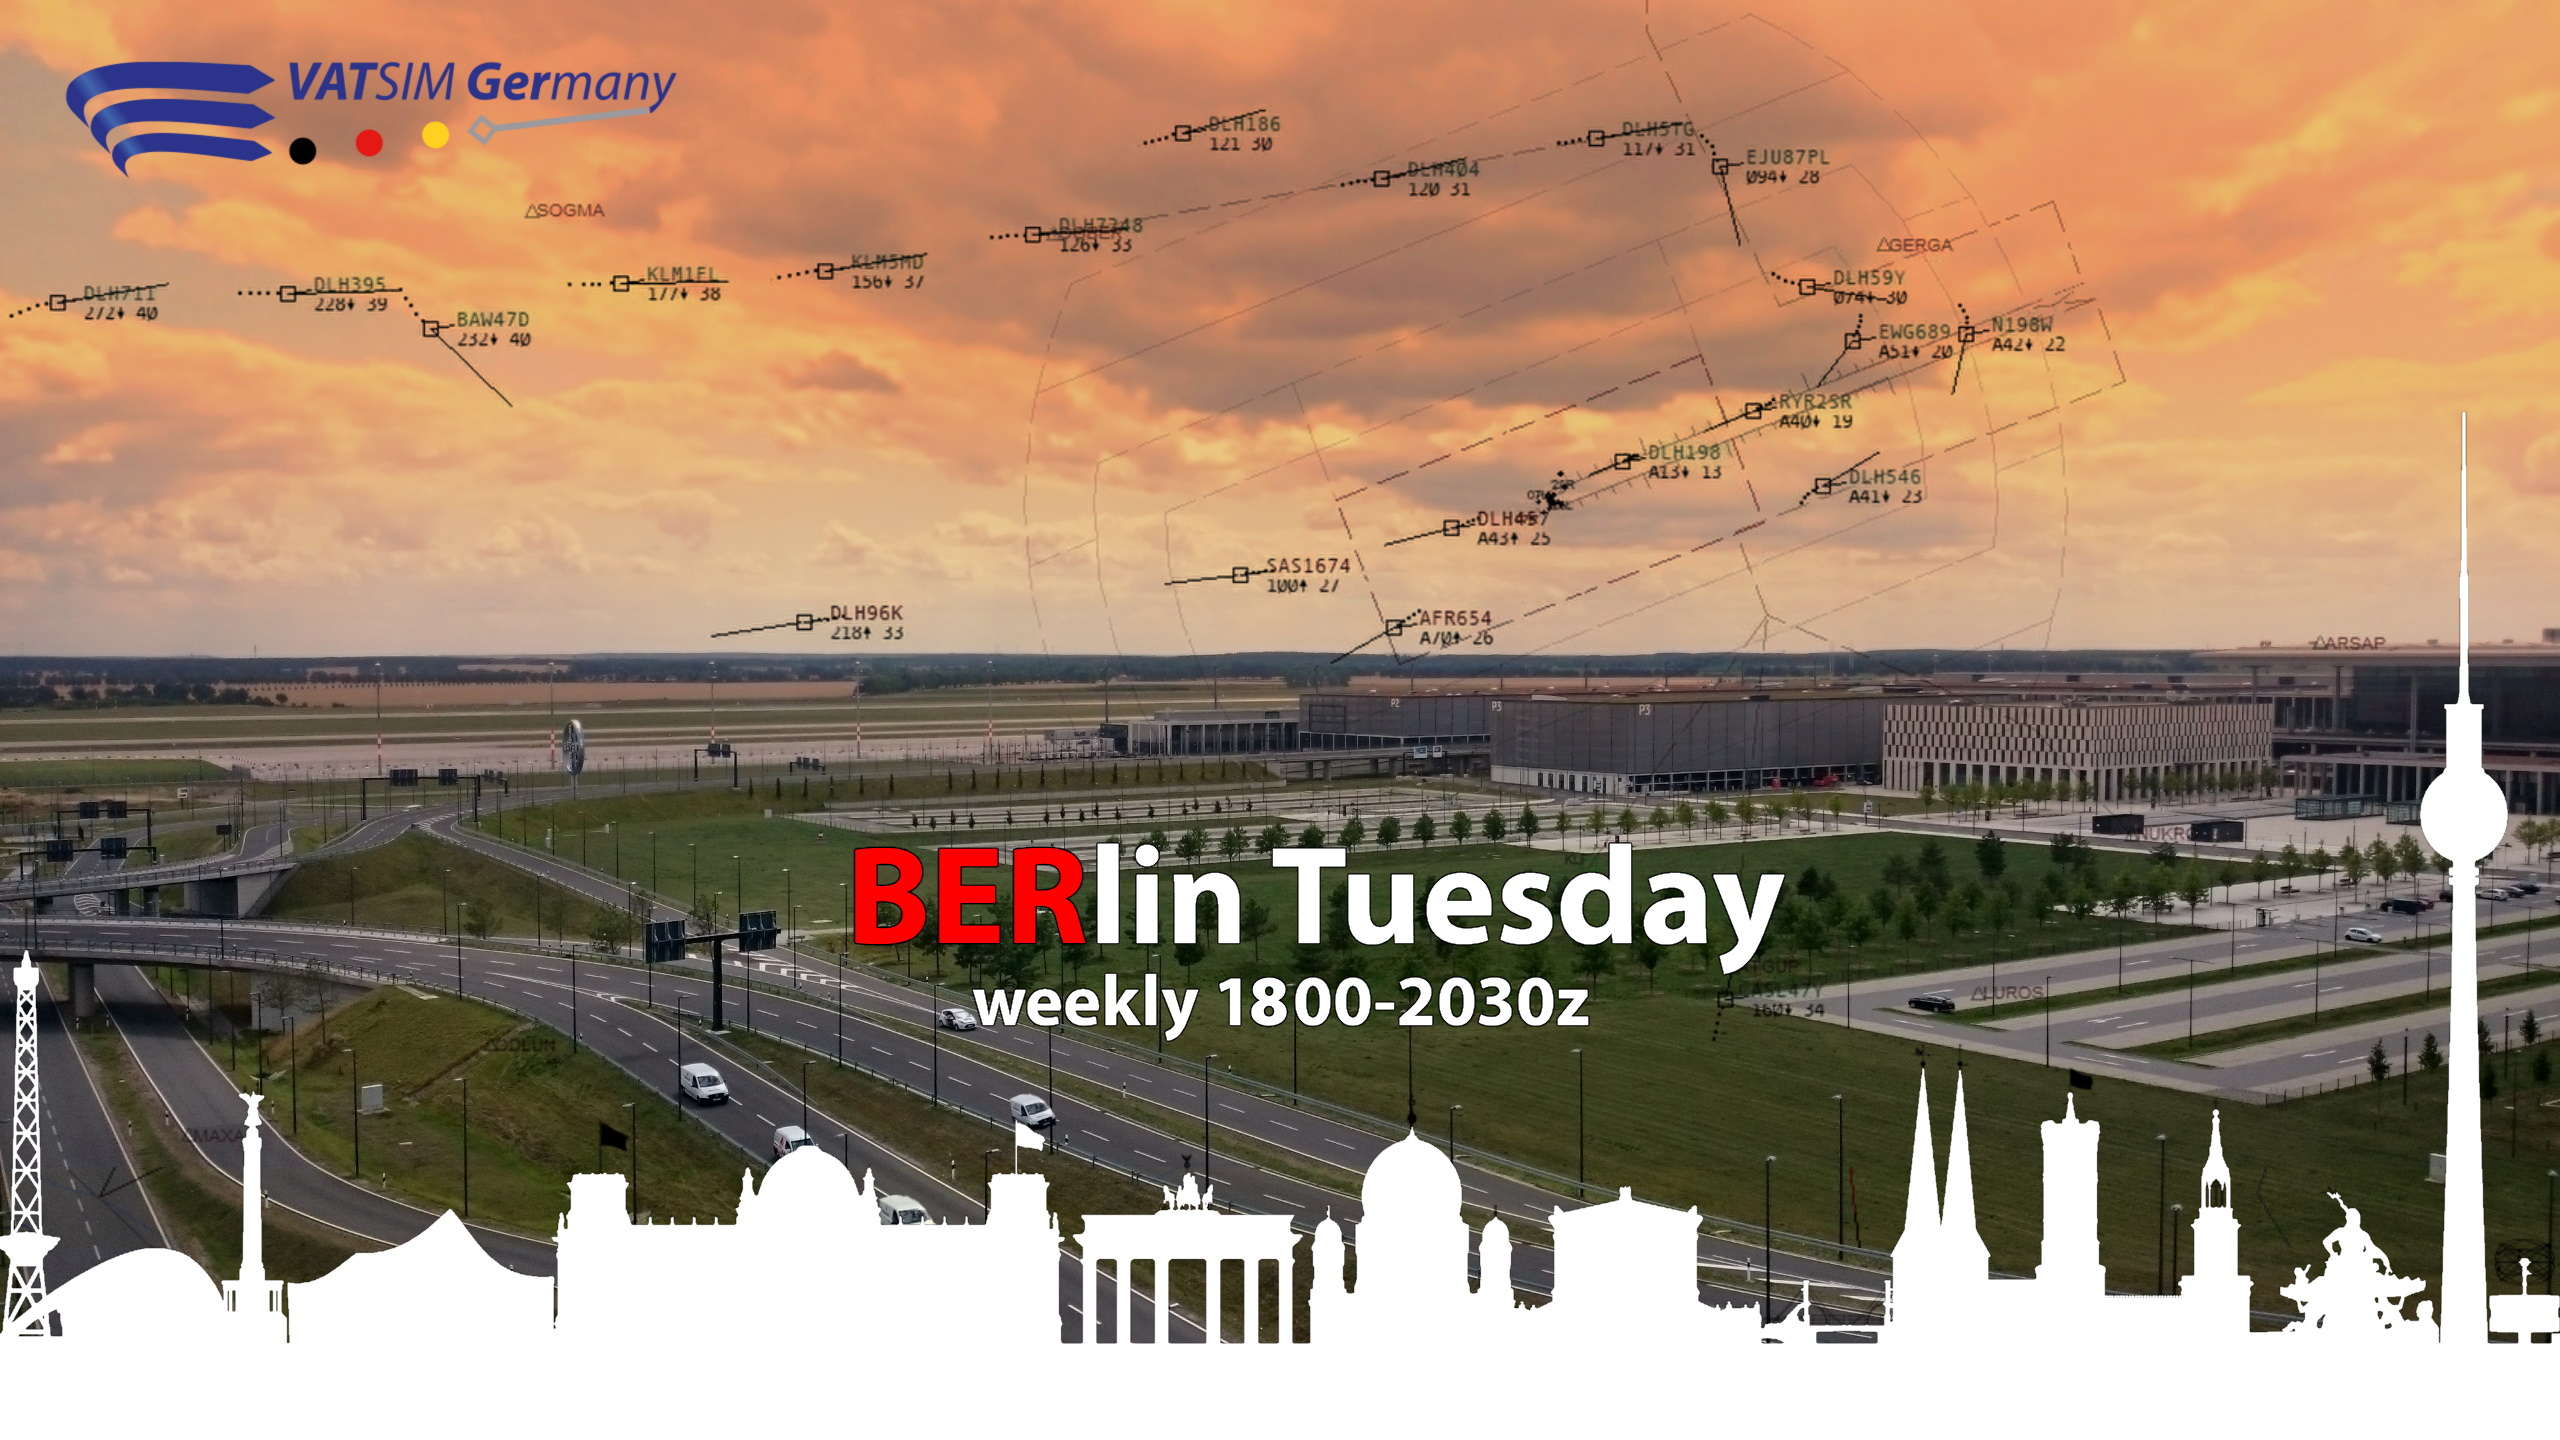 BERlin Tuesday - EDDB - Virtual Norwegian Events